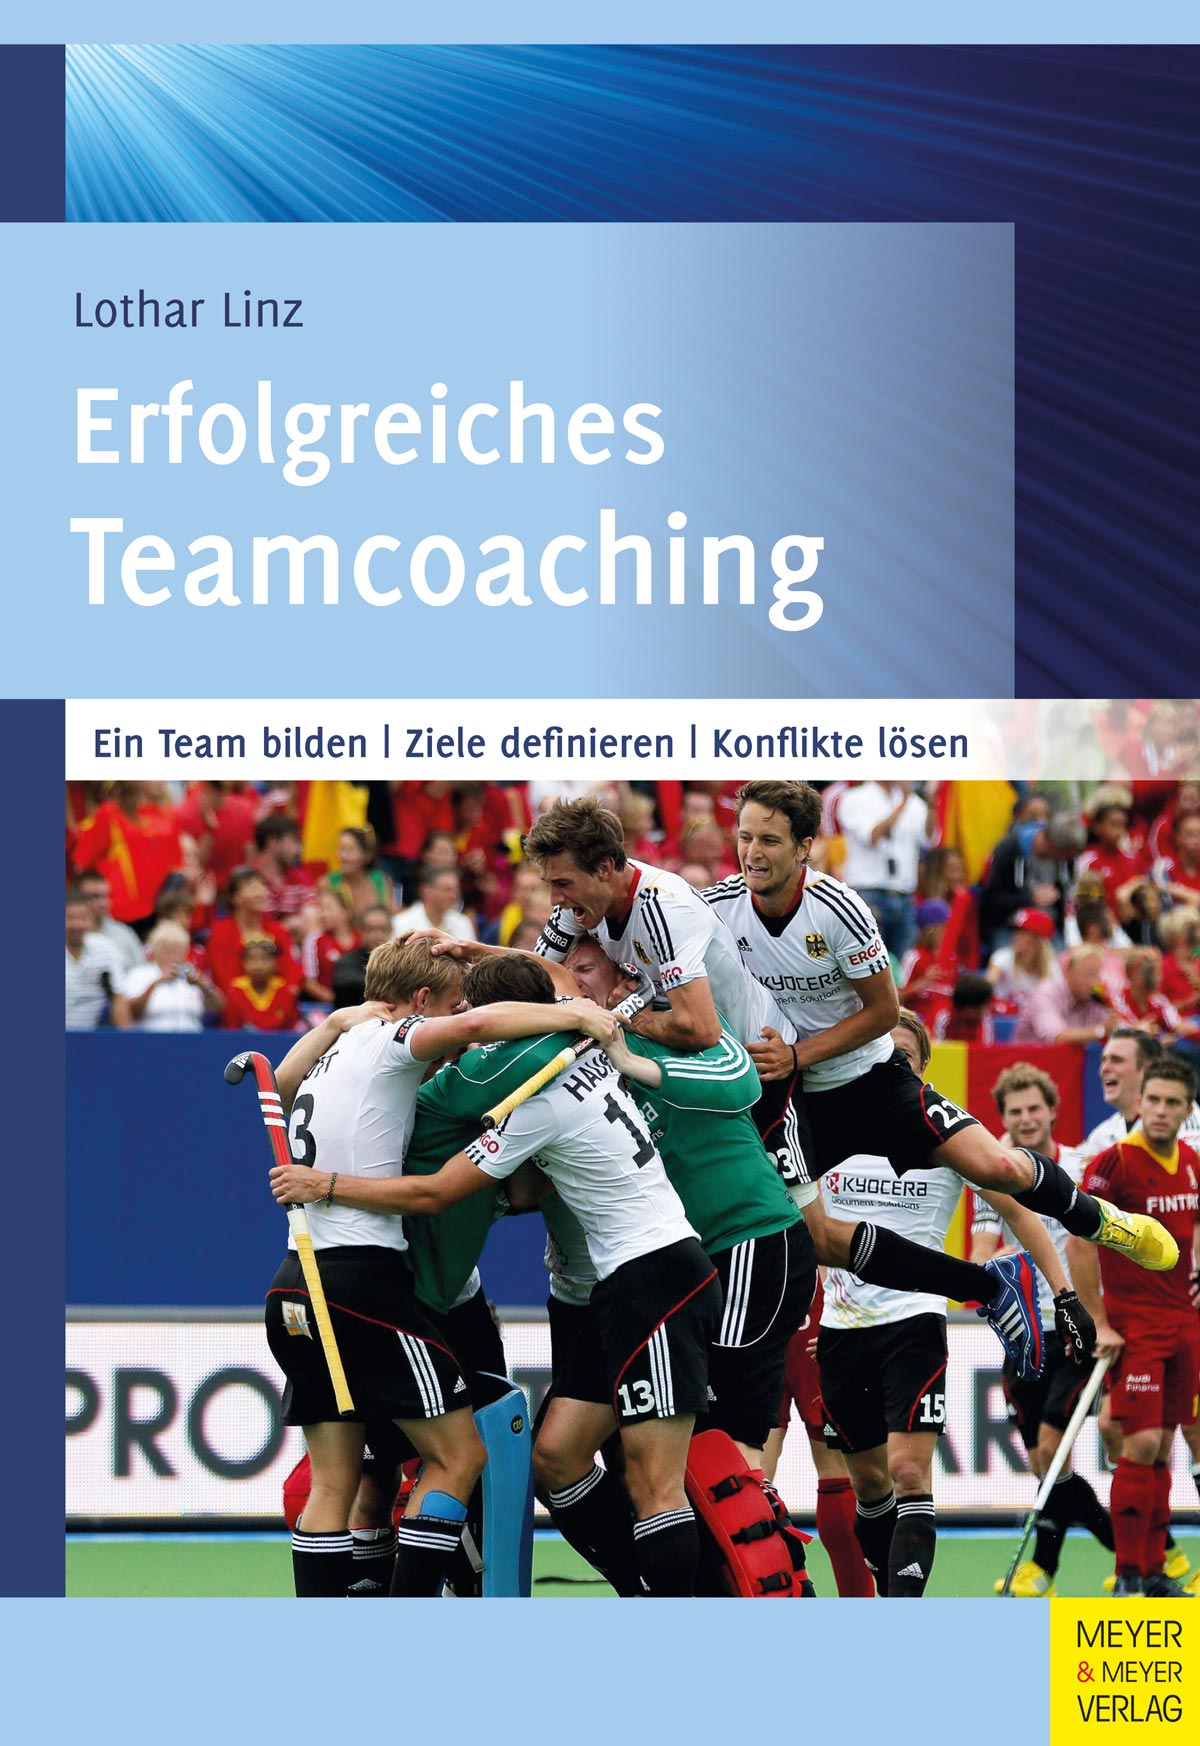 Lothar Linz Erfolgreiches Teamcoaching cathie linz michael s baby